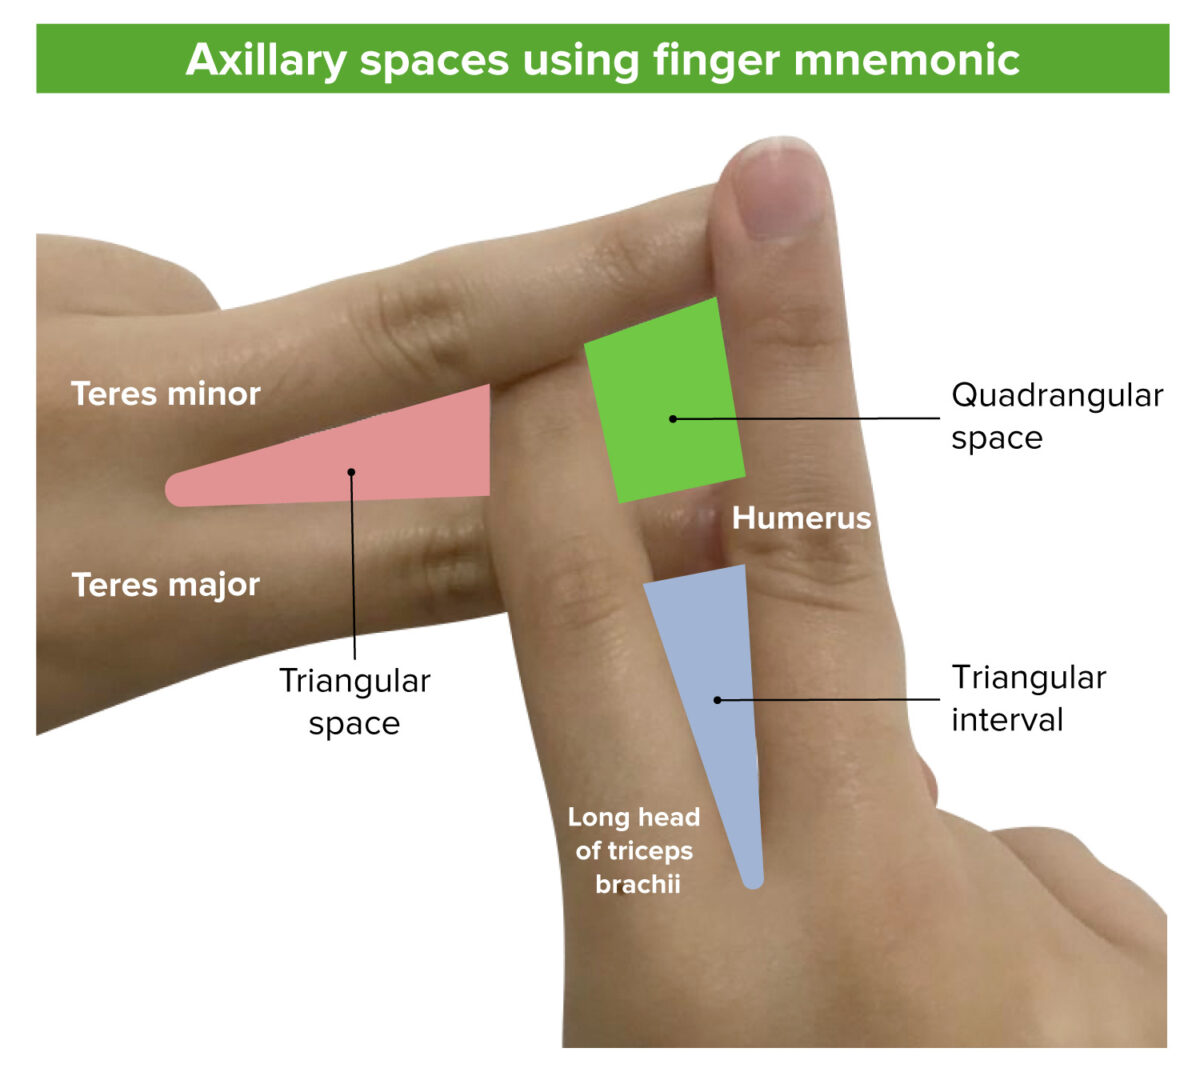 Mnemonic of axillary spaces